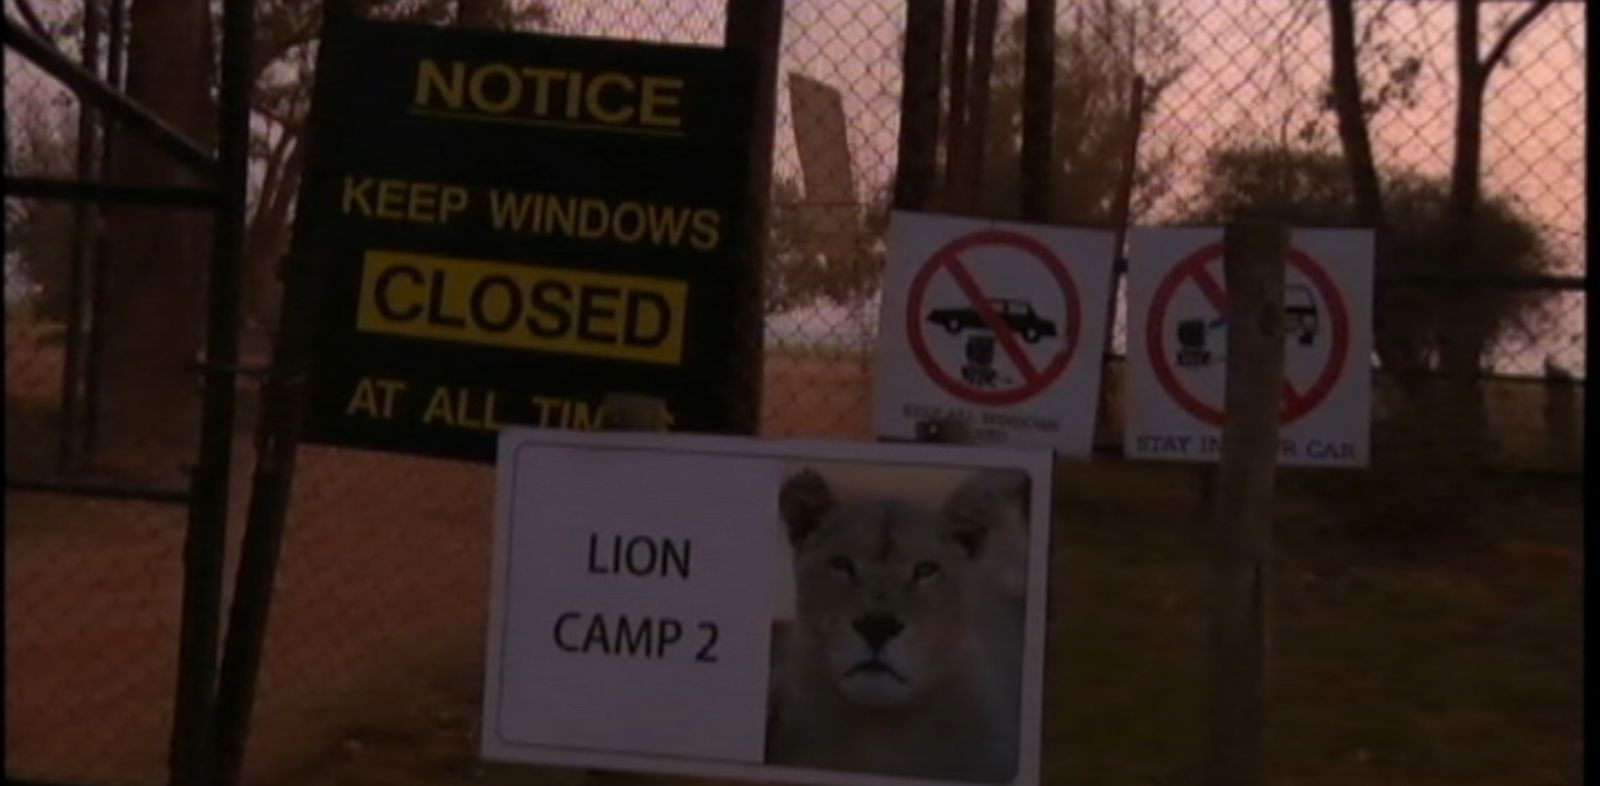 VIDEO: The woman was killed when a lion lunged through the open window of a car at The Lion Park in Johannesburg, South Africa.